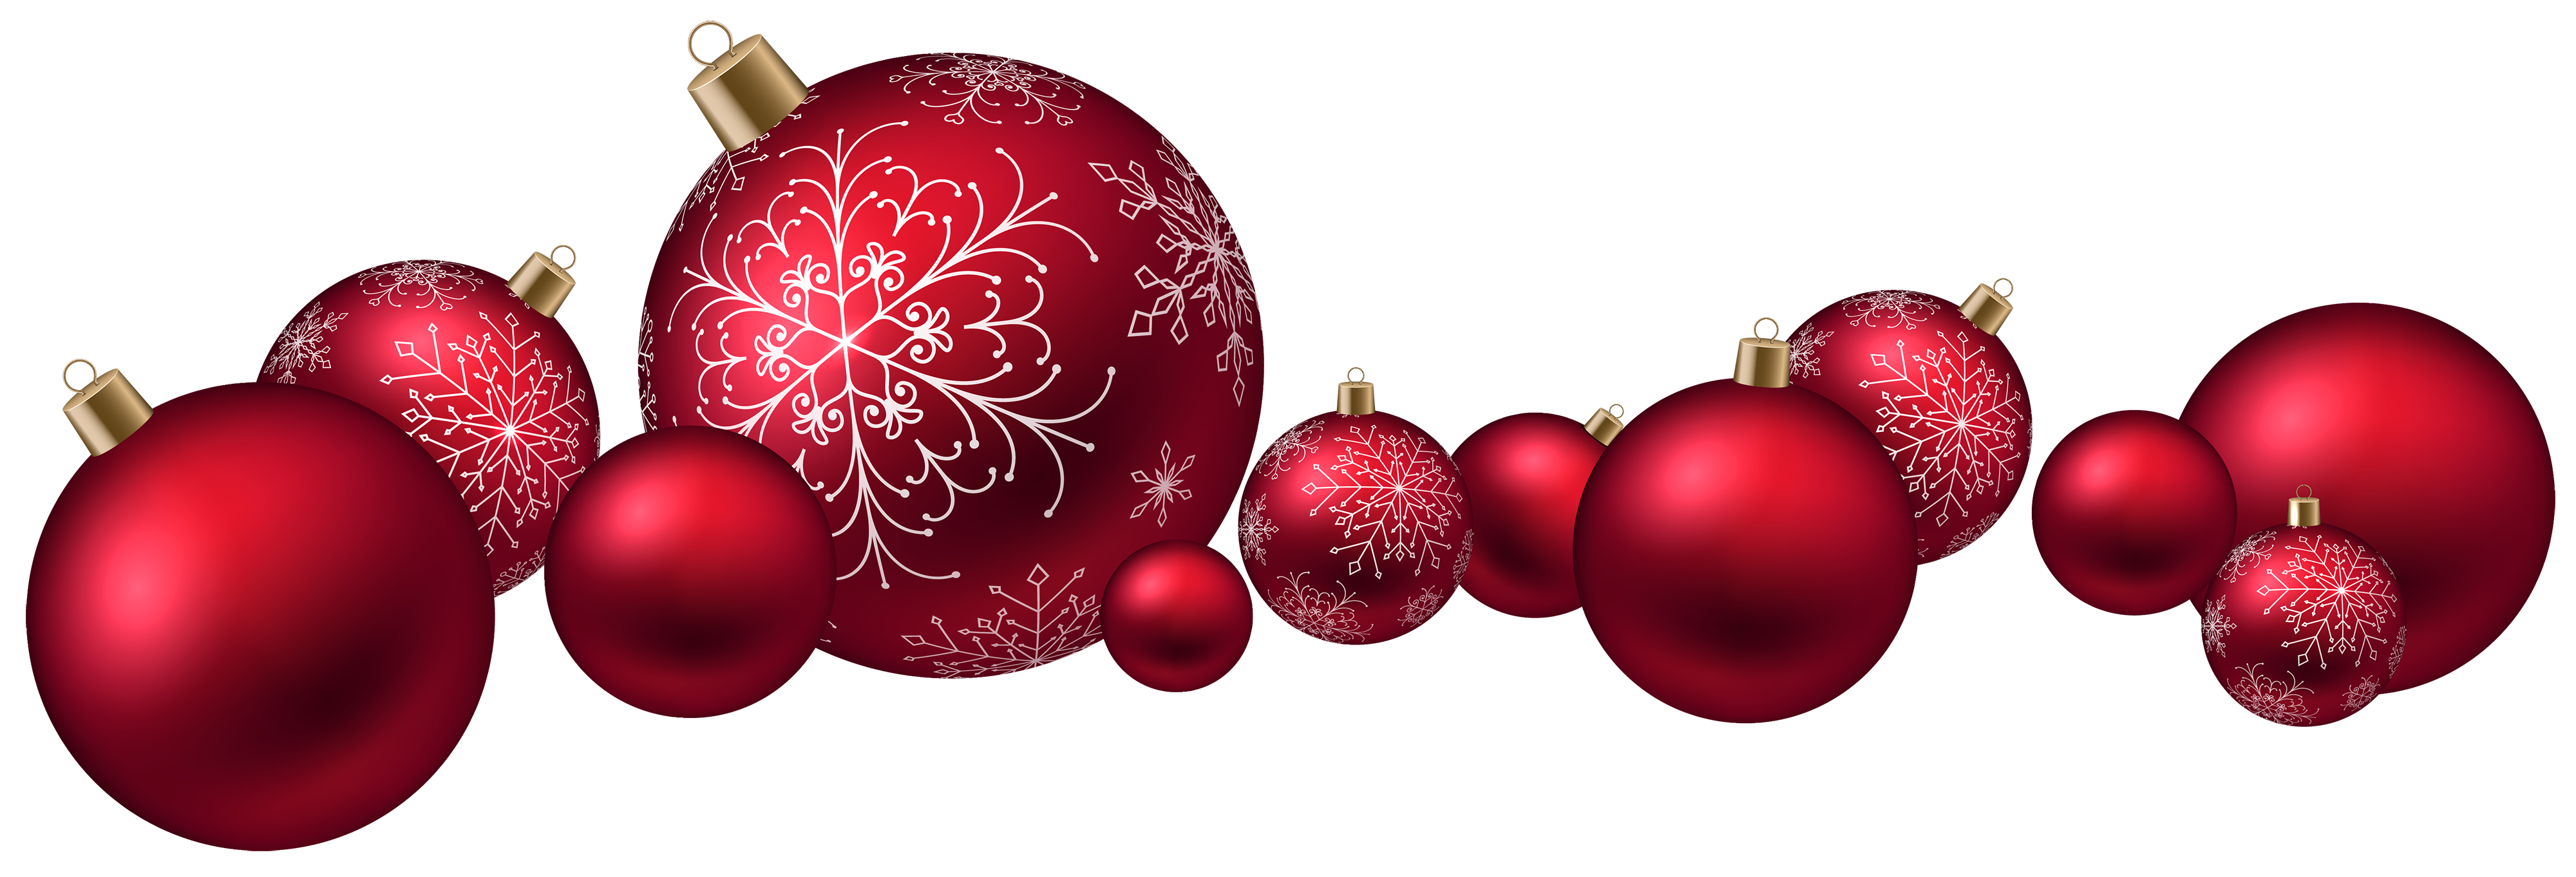 free download christmas balls png images #35211 - free icons and png